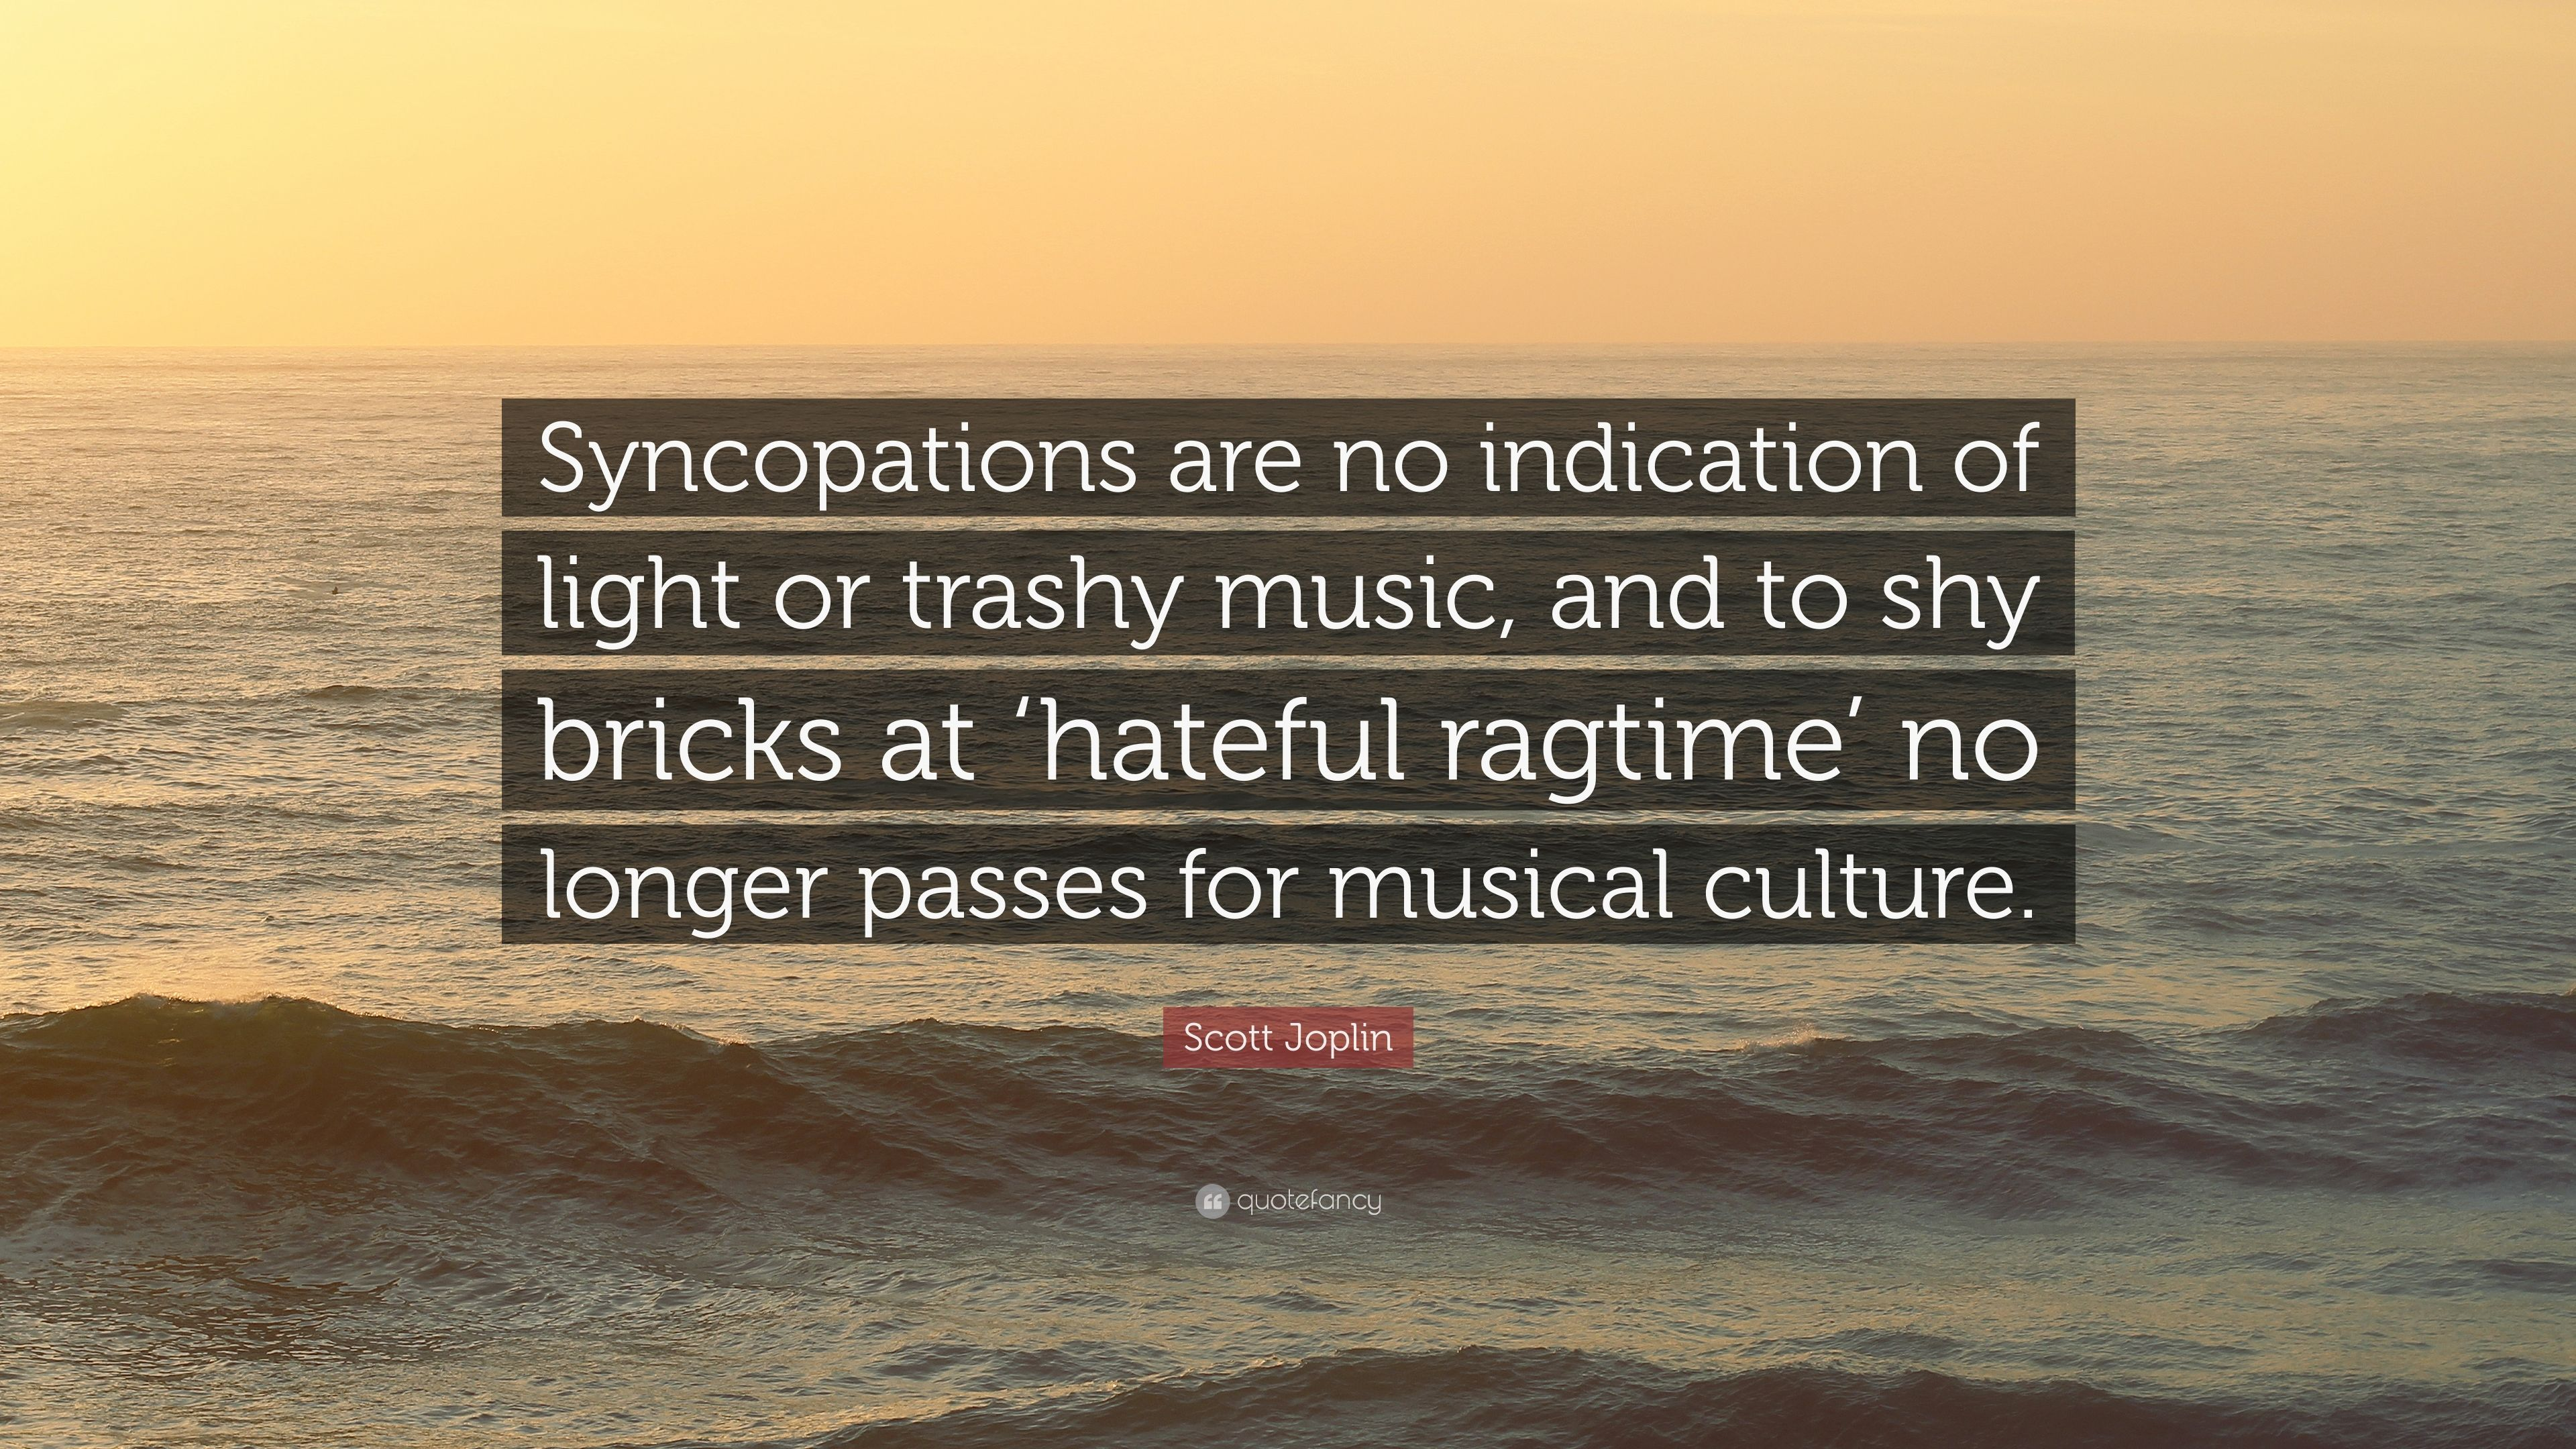 Scott Joplin Quote Syncopations Are No Indication Of Light Or Trashy Music And To Shy Bricks At Hateful Ragtime No Longer Passes For Mus 7 Wallpapers Quotefancy